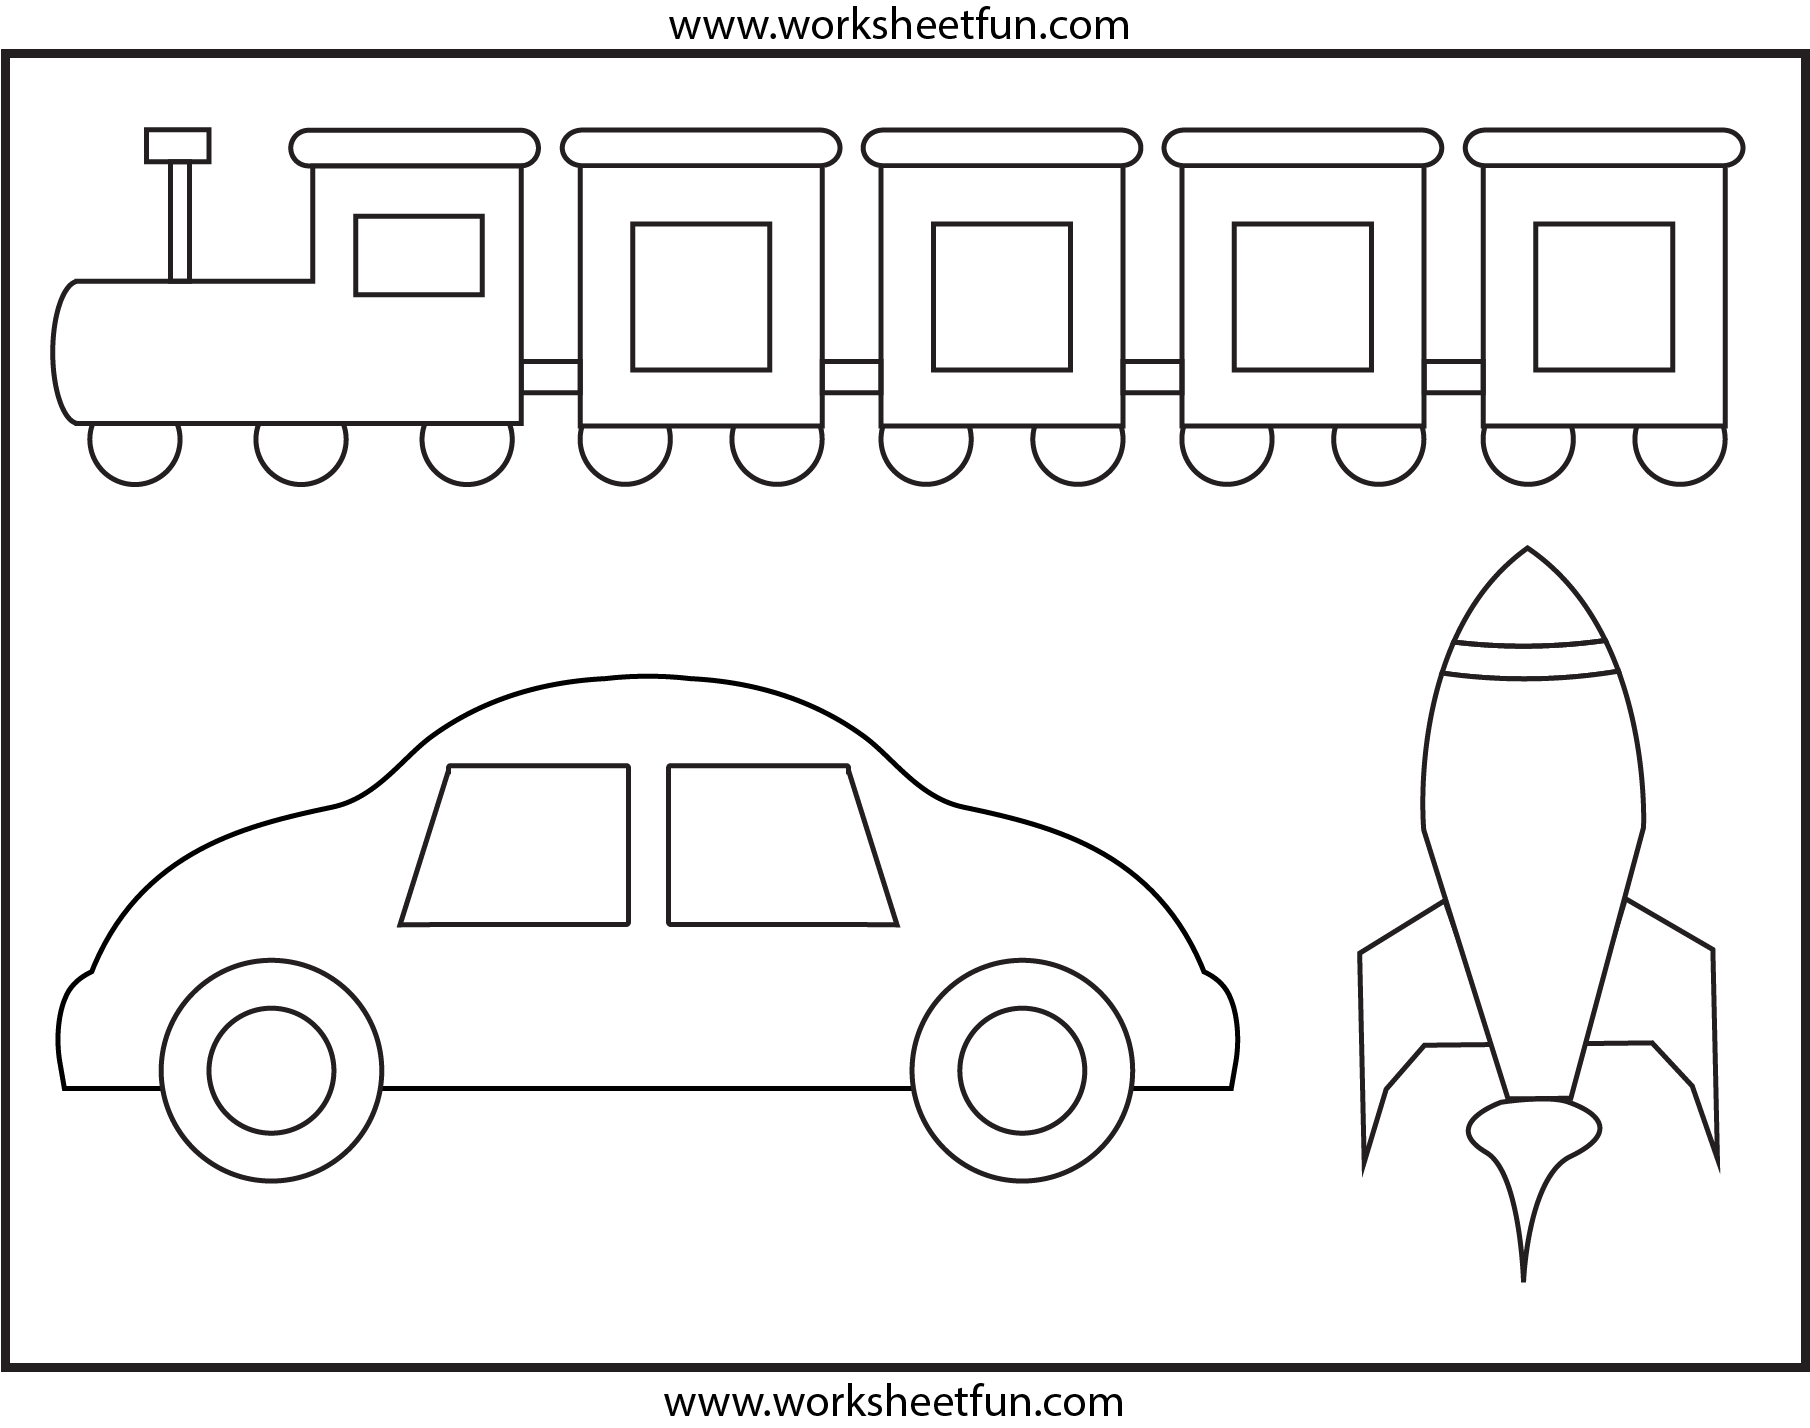 coloring worksheet transportation preschool worksheets preschool worksheets. Black Bedroom Furniture Sets. Home Design Ideas